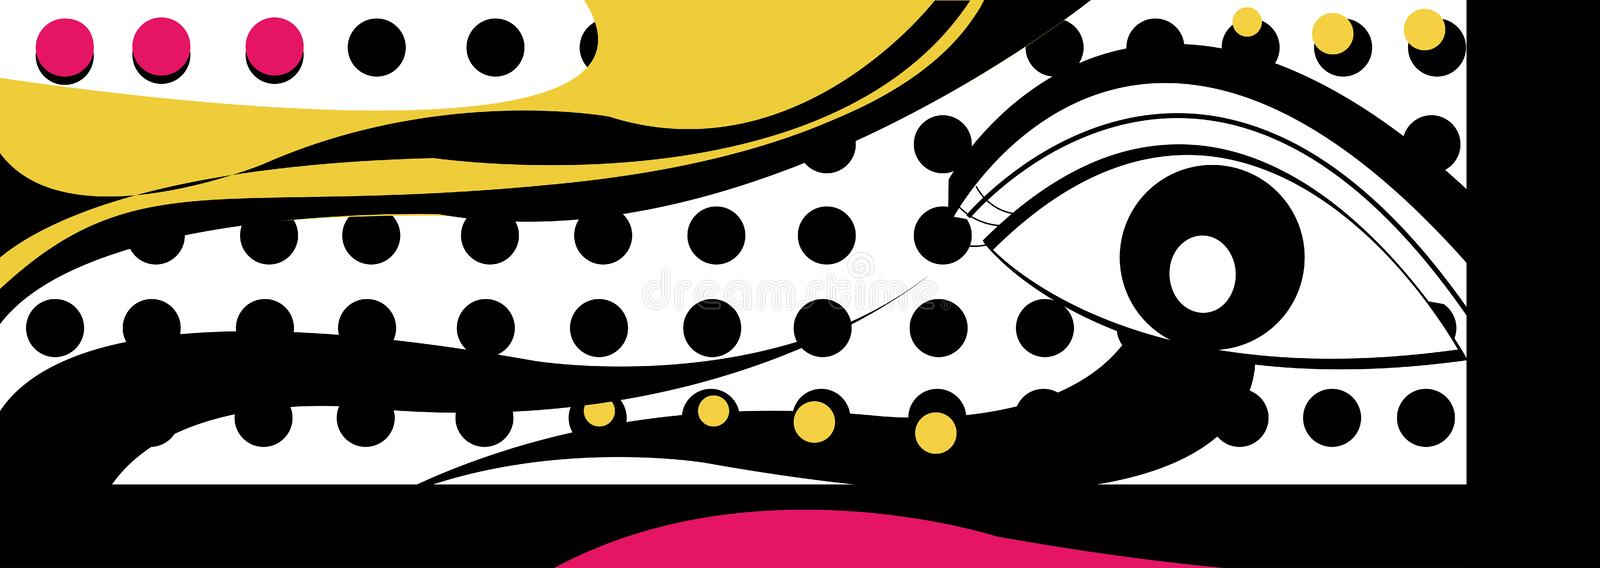 PopArt eye curve line dots halftone warhol style. PopArt eye with curve line dots halftone andy warhol style watching you royalty free illustration